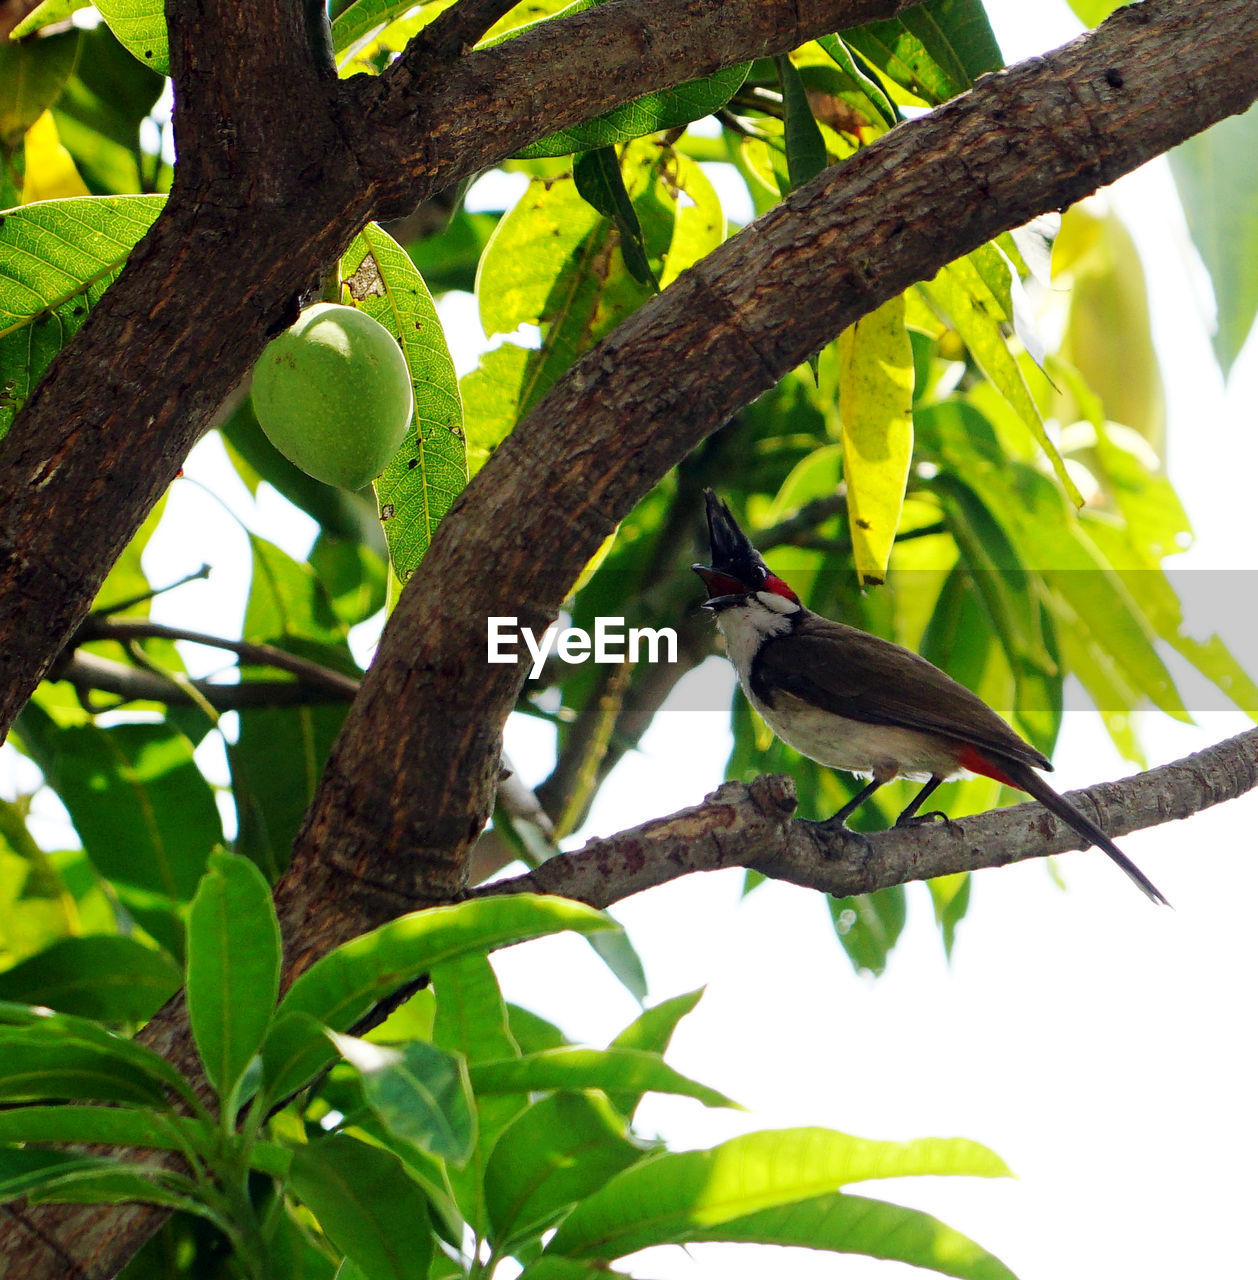 animals in the wild, plant, animal wildlife, vertebrate, tree, bird, leaf, branch, plant part, animal, low angle view, one animal, animal themes, perching, nature, growth, no people, green color, day, outdoors